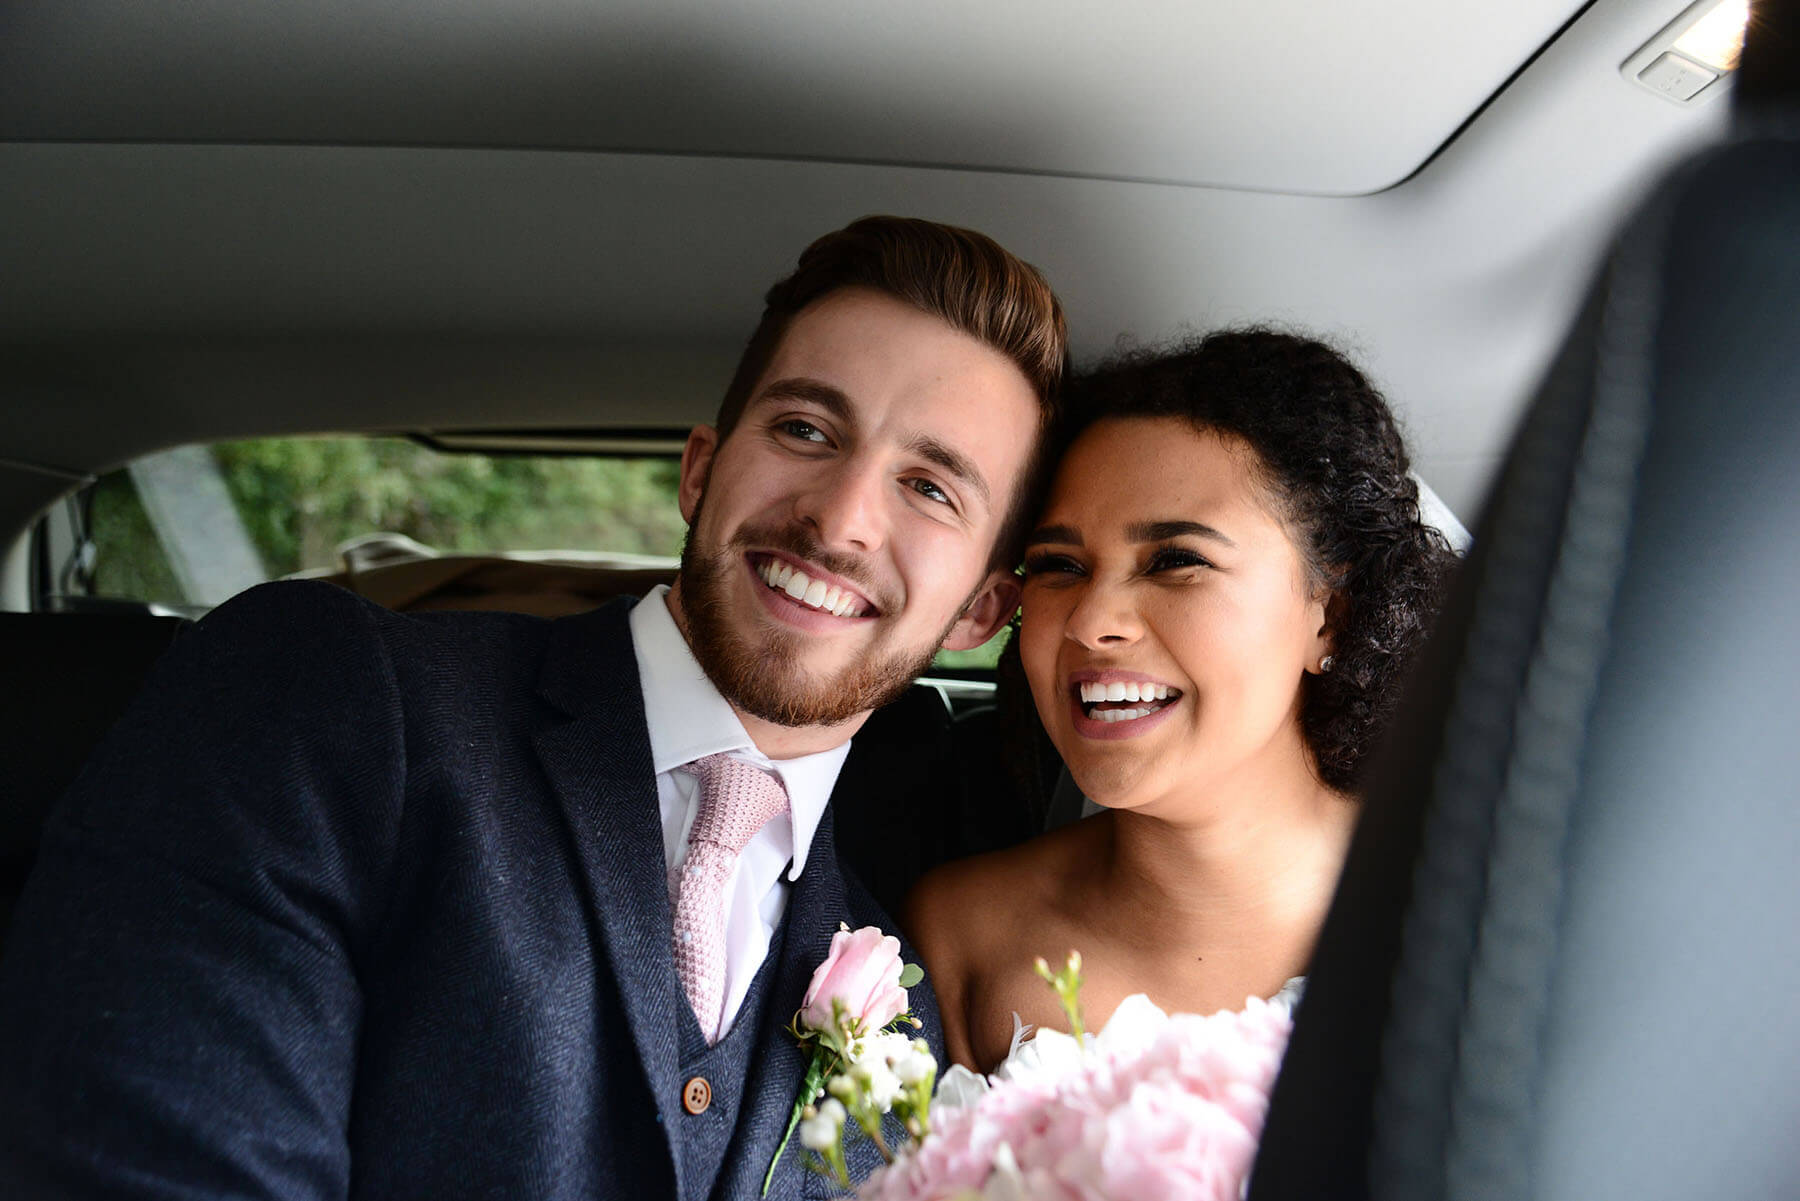 Bride and groom smiling in the back of the wedding car